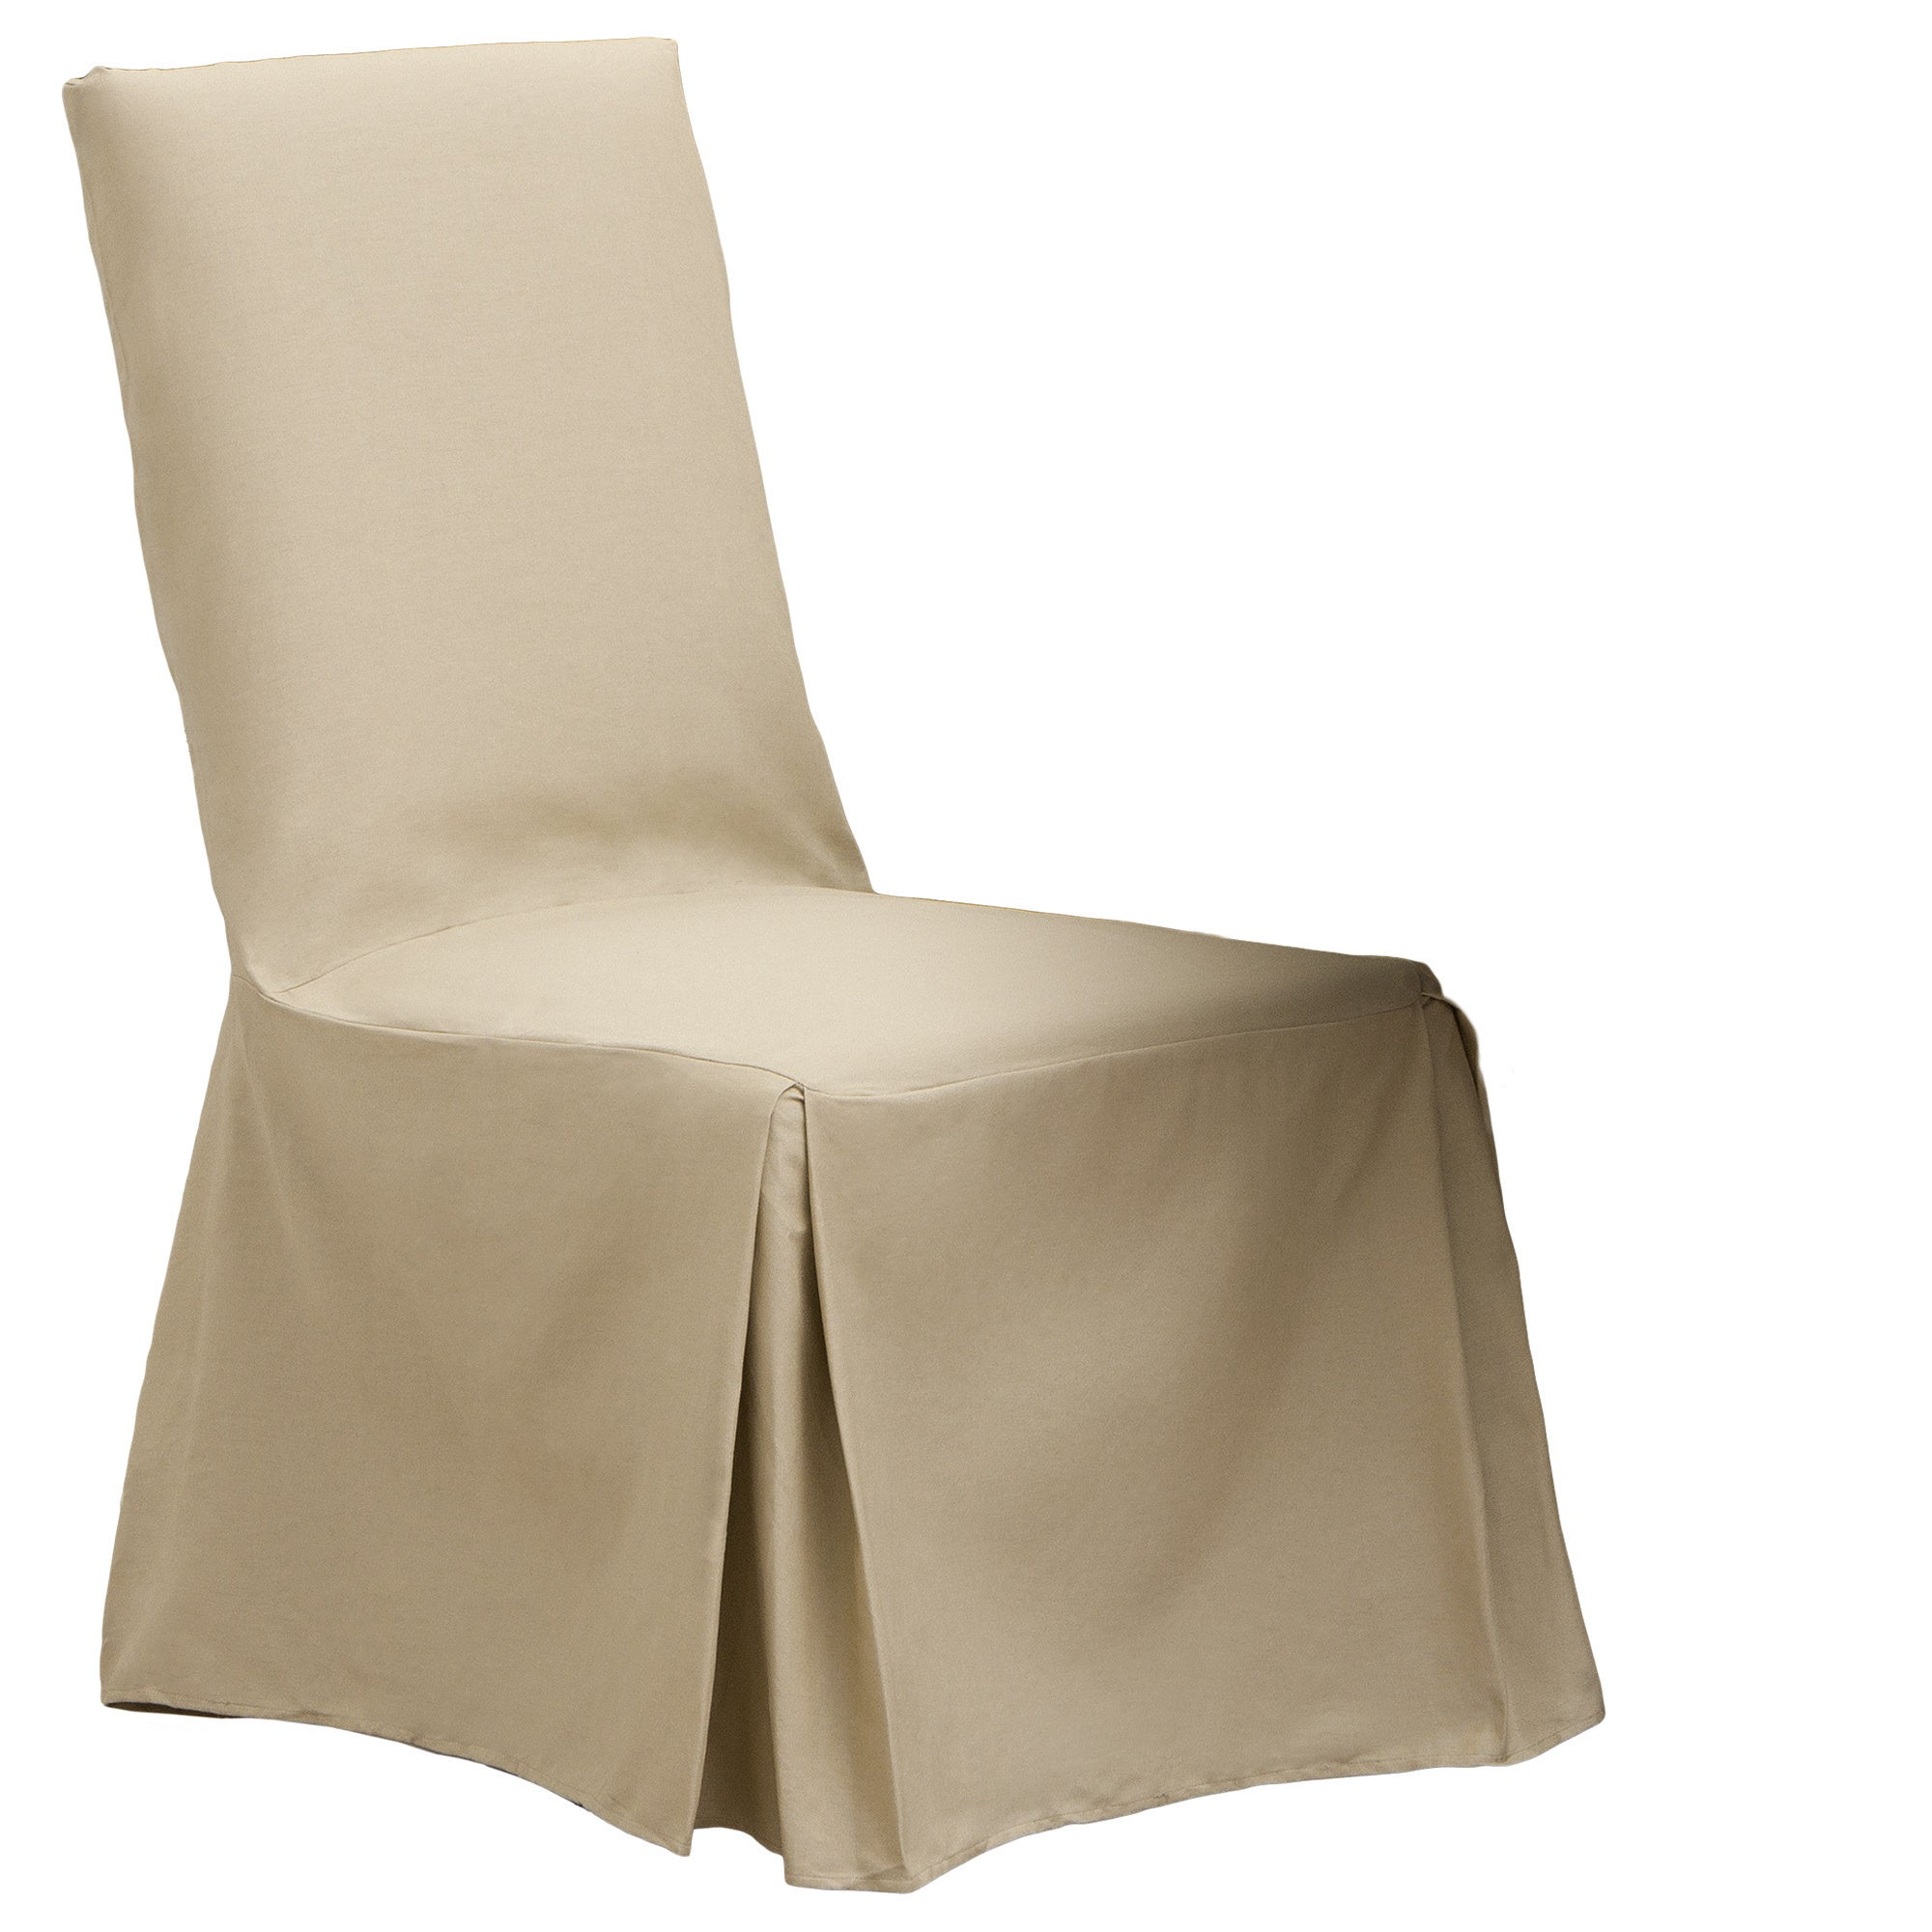 and decors chair slipcovers image idea design dining slipcover room